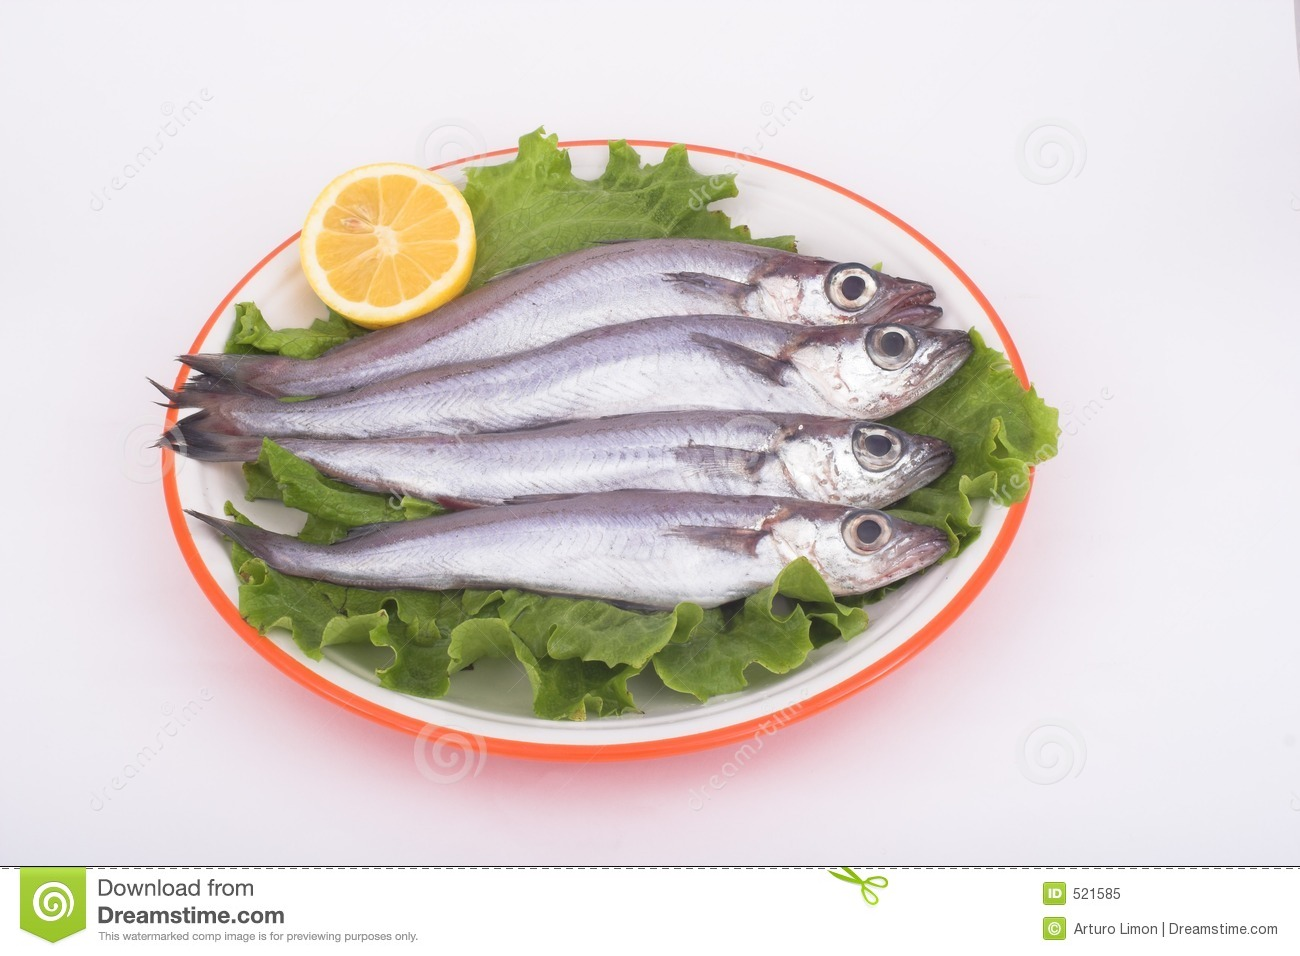 Blue whiting fish royalty free stock photo image 521585 for Whiting fish picture